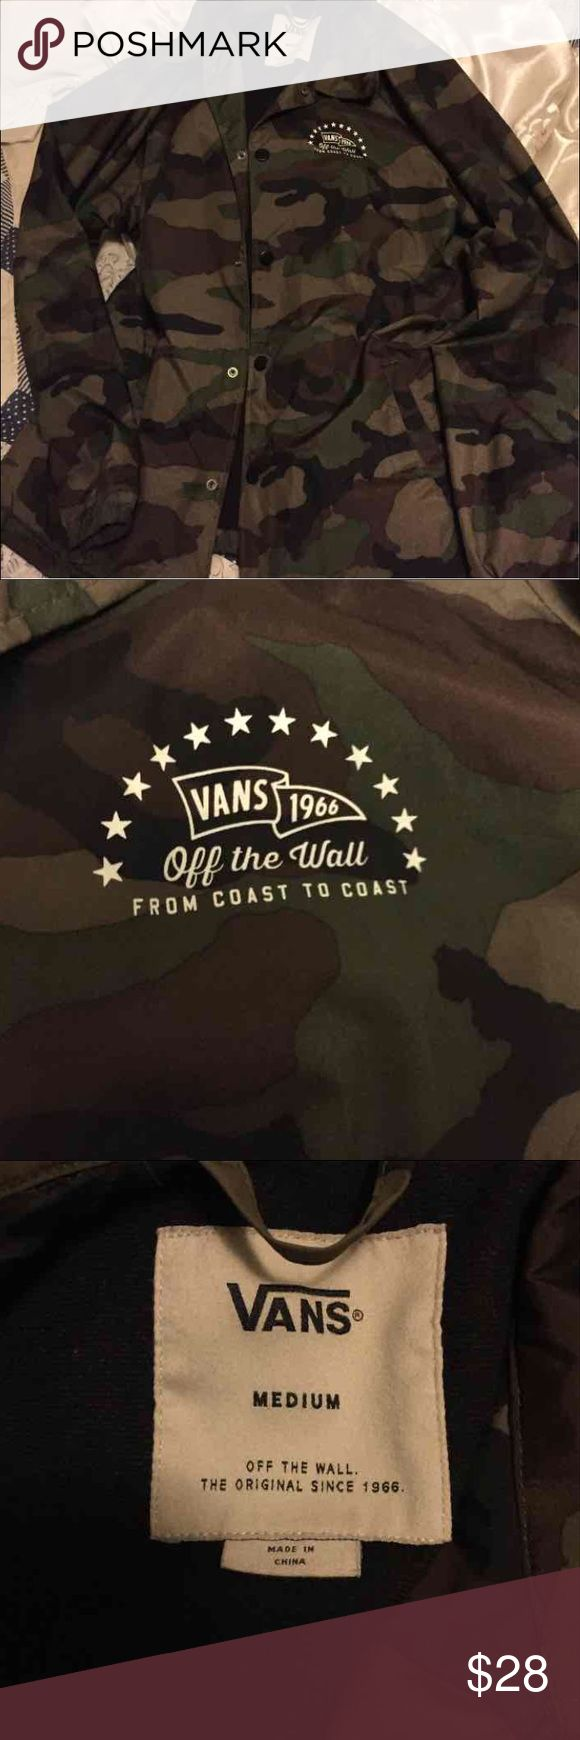 Vans Camo Coaches Jacket Purchased from urban outfitters. Coaches jacket. Worn 3-4 times. Vans. Urban Outfitters Jackets & Coats Windbreakers